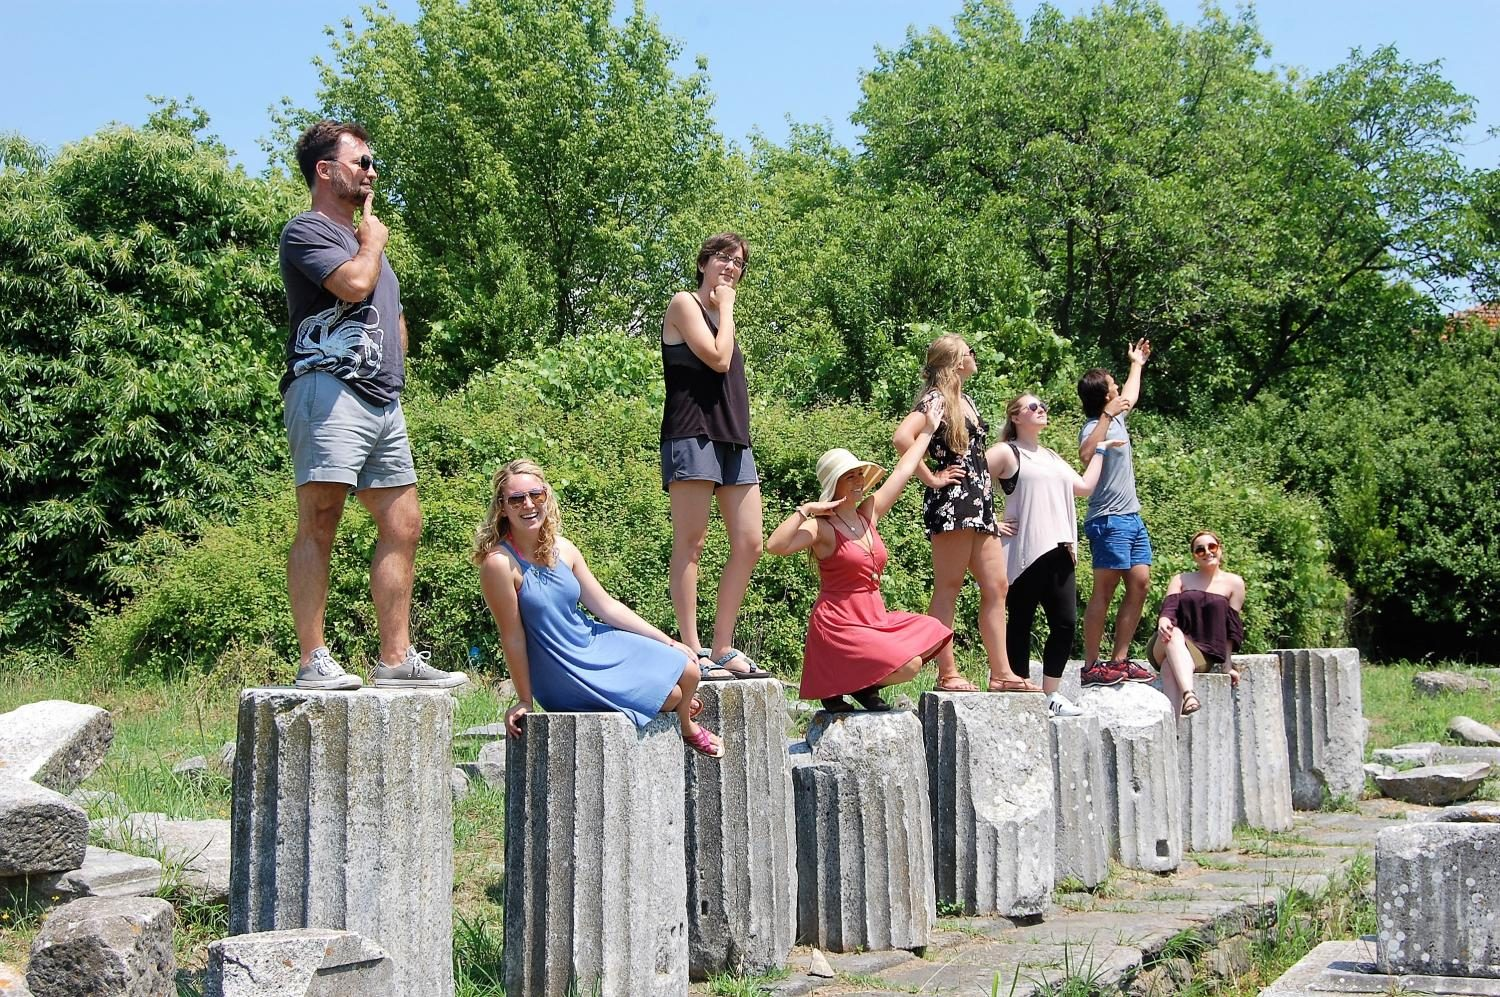 Students pose as sculptures in the Roman Agora at Limenas in Thasos, Greece.